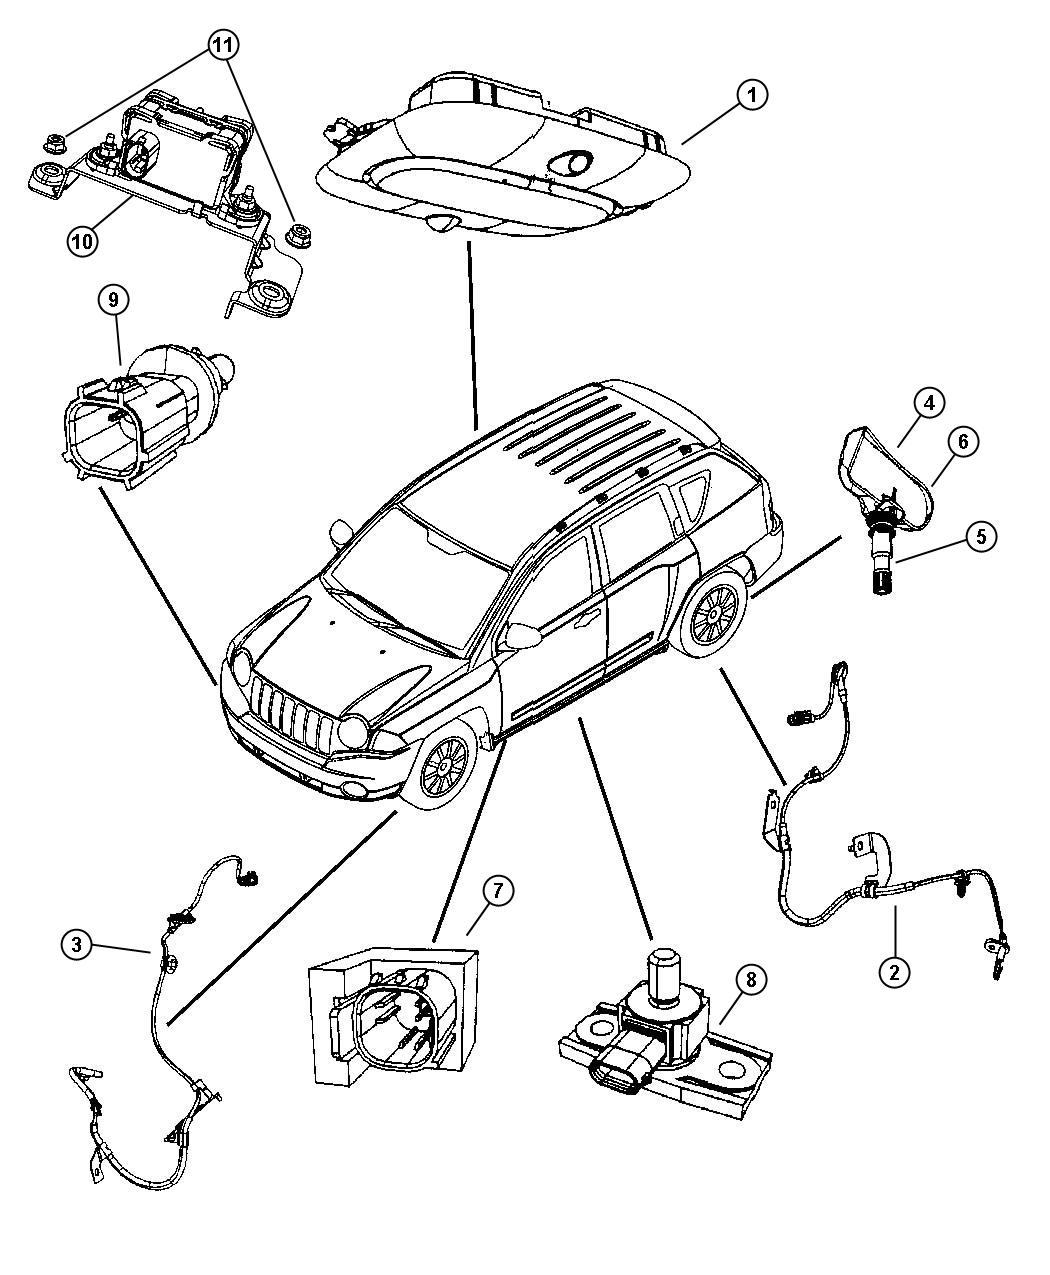 Jeep Patriot Sensor Dynamics Lateral Acceleration And